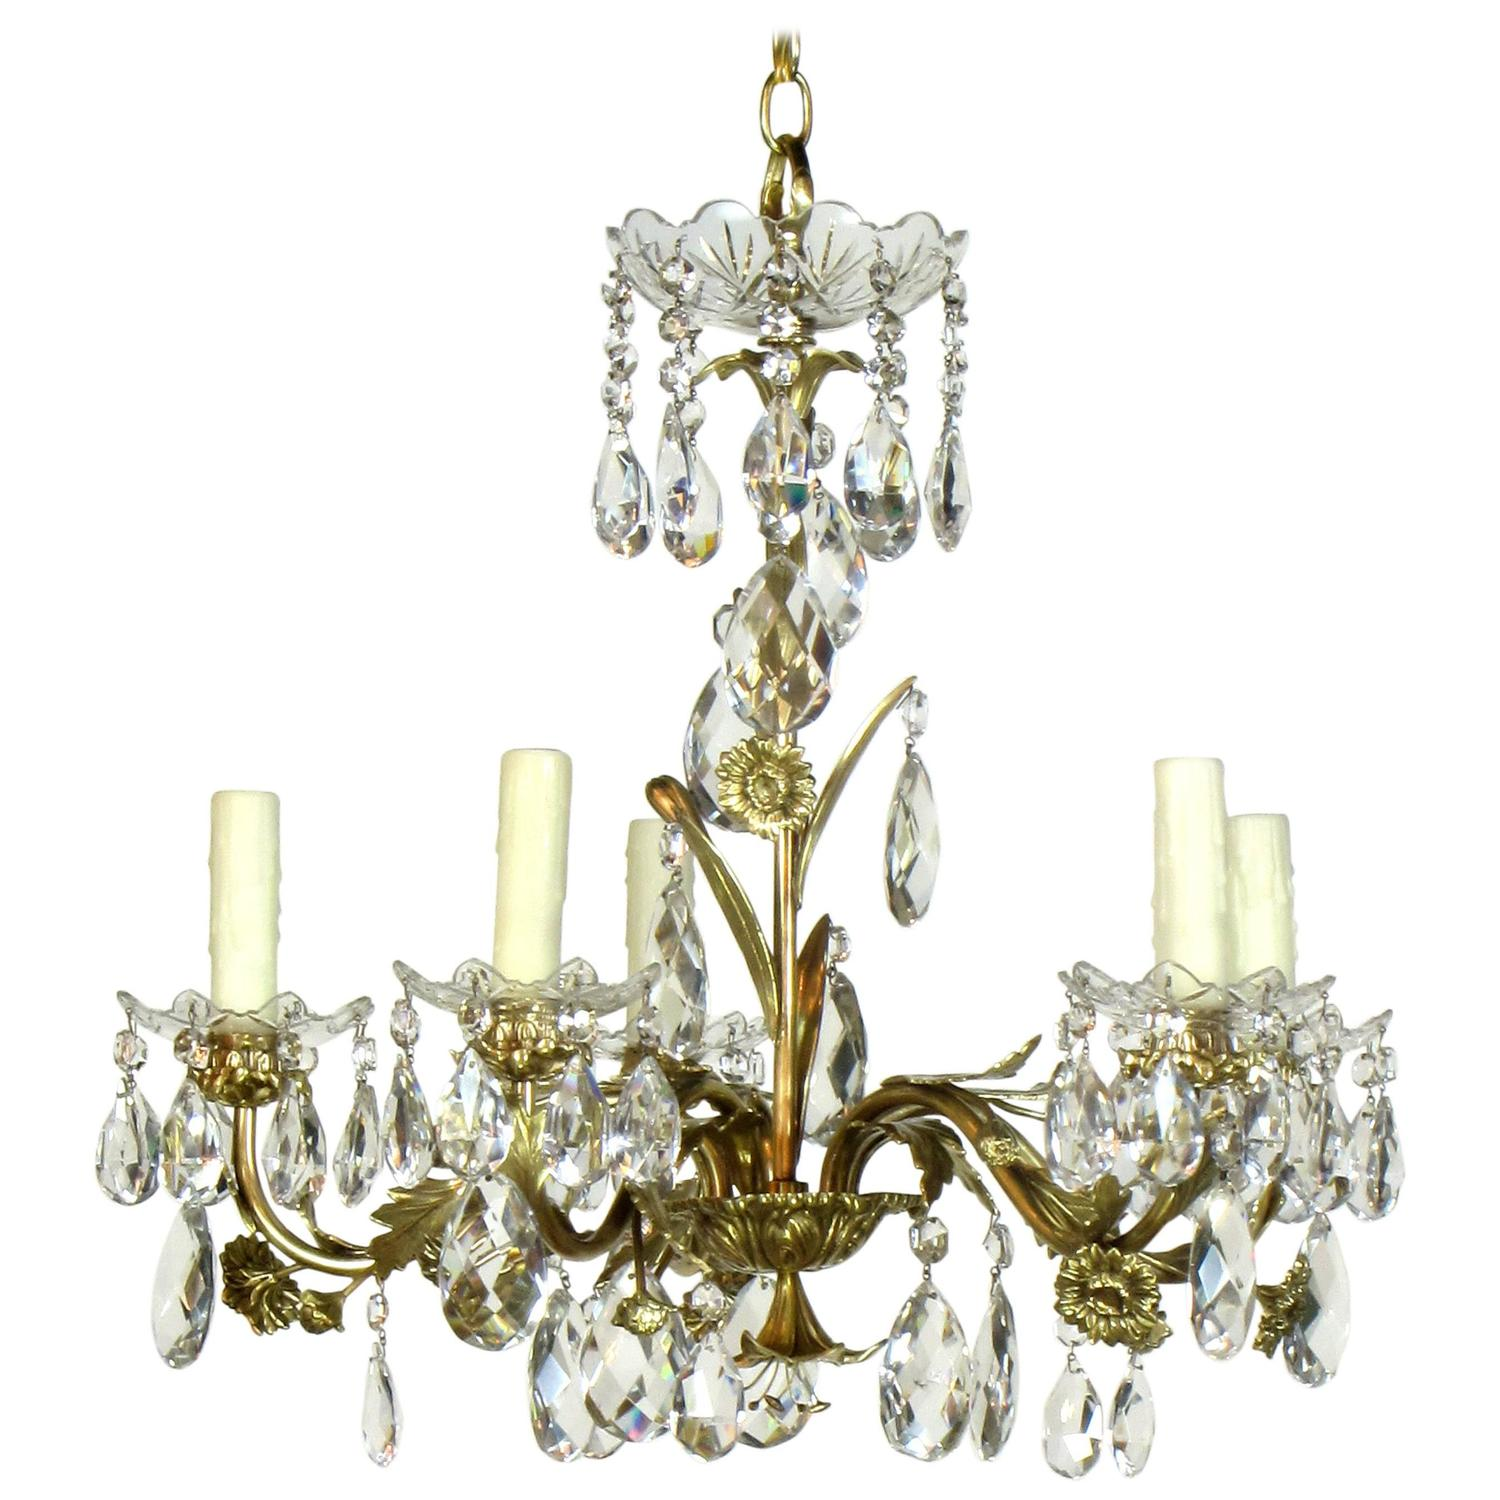 Red Aesthetic Chandelier: Five-Light Swedish Brass And Crystal Chandelier For Sale